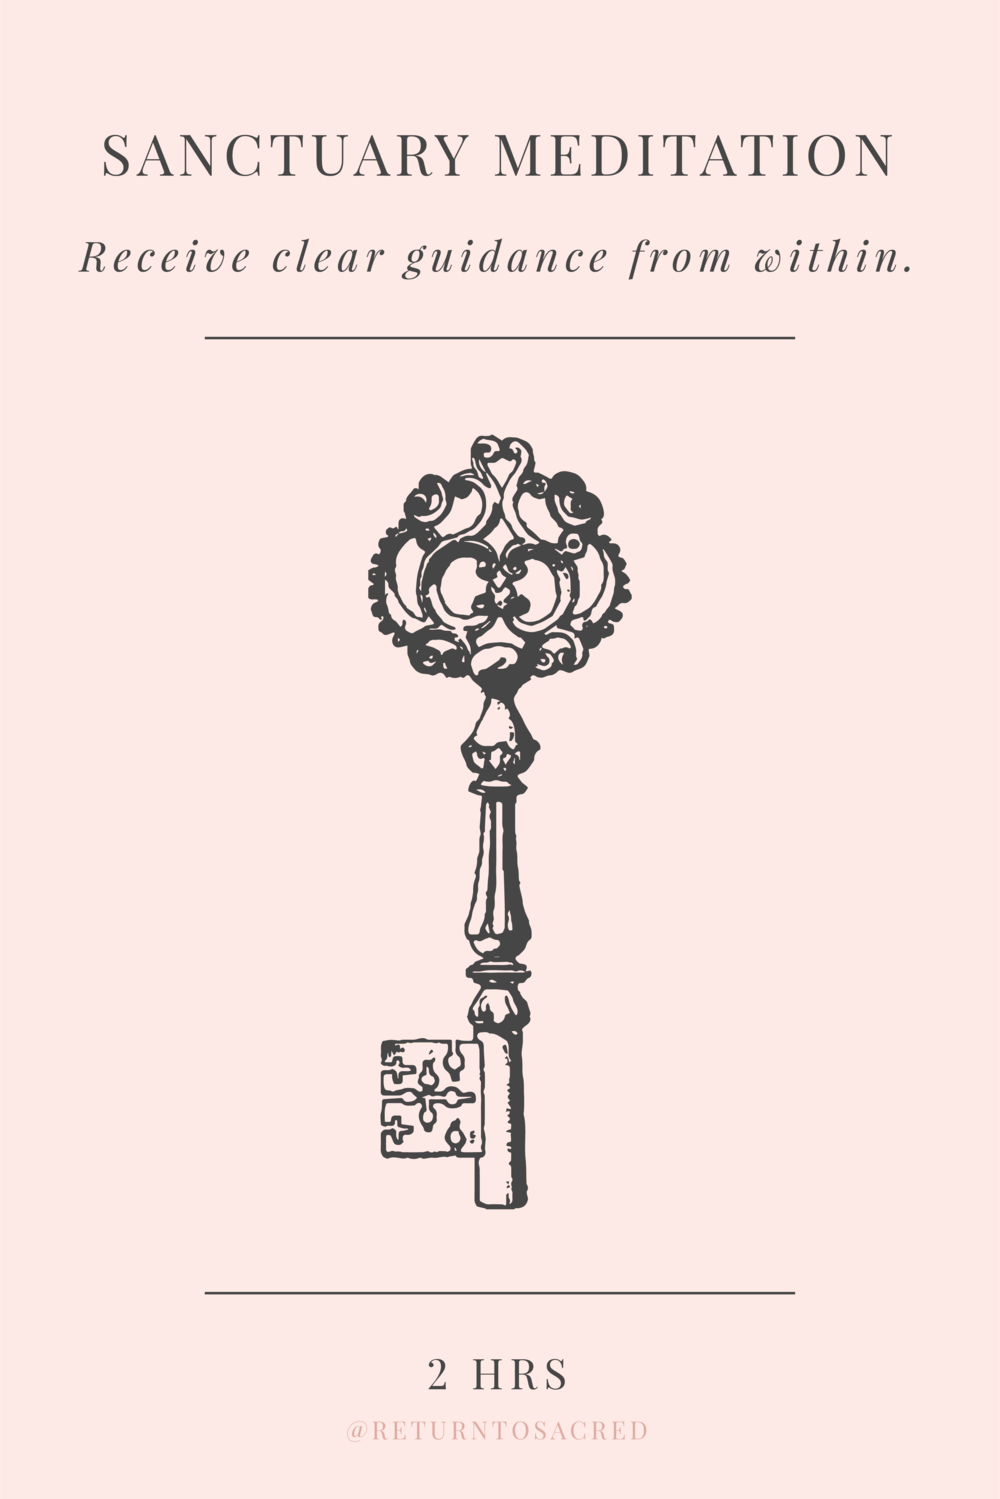 Sanctuary-Meditation-Card.png